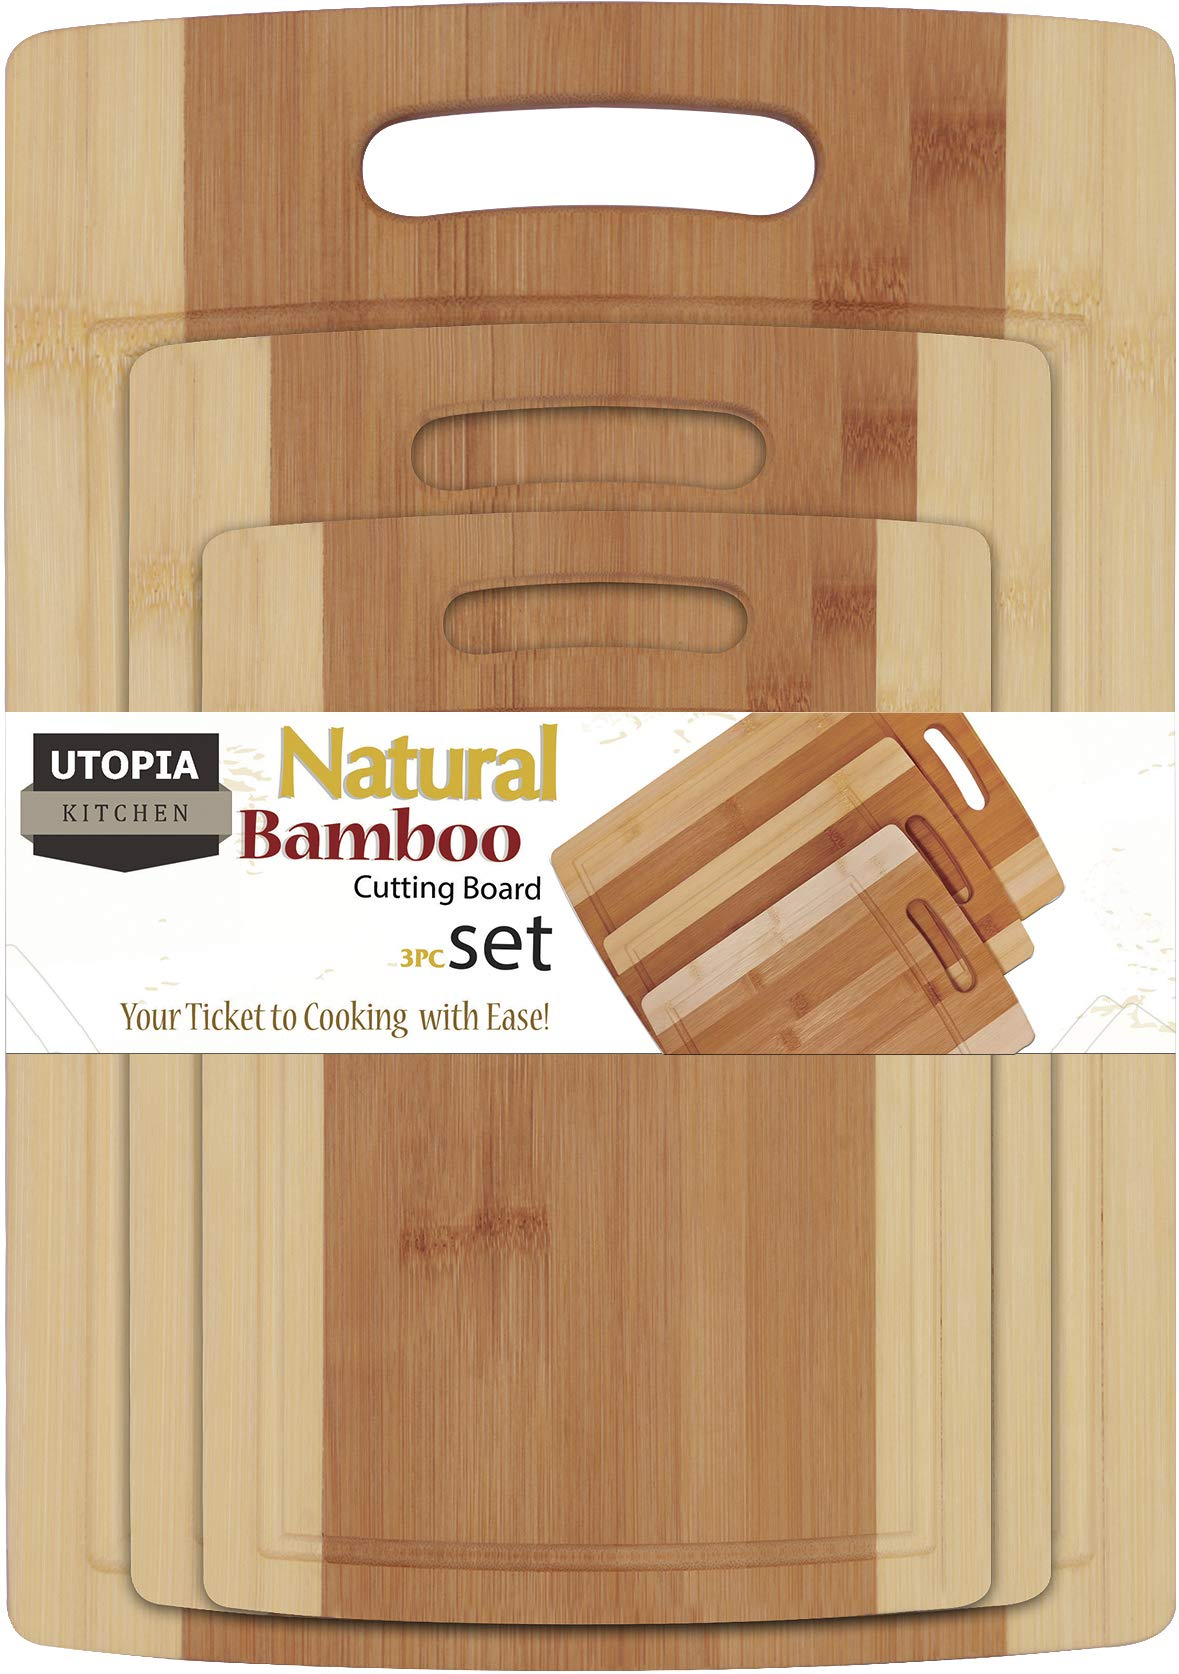 Utopia Kitchen Natural Bamboo Cutting Boards with Juice Grooves - Wooden Cutting Boards 3 Piece Set by Utopia Kitchen (Image #1)